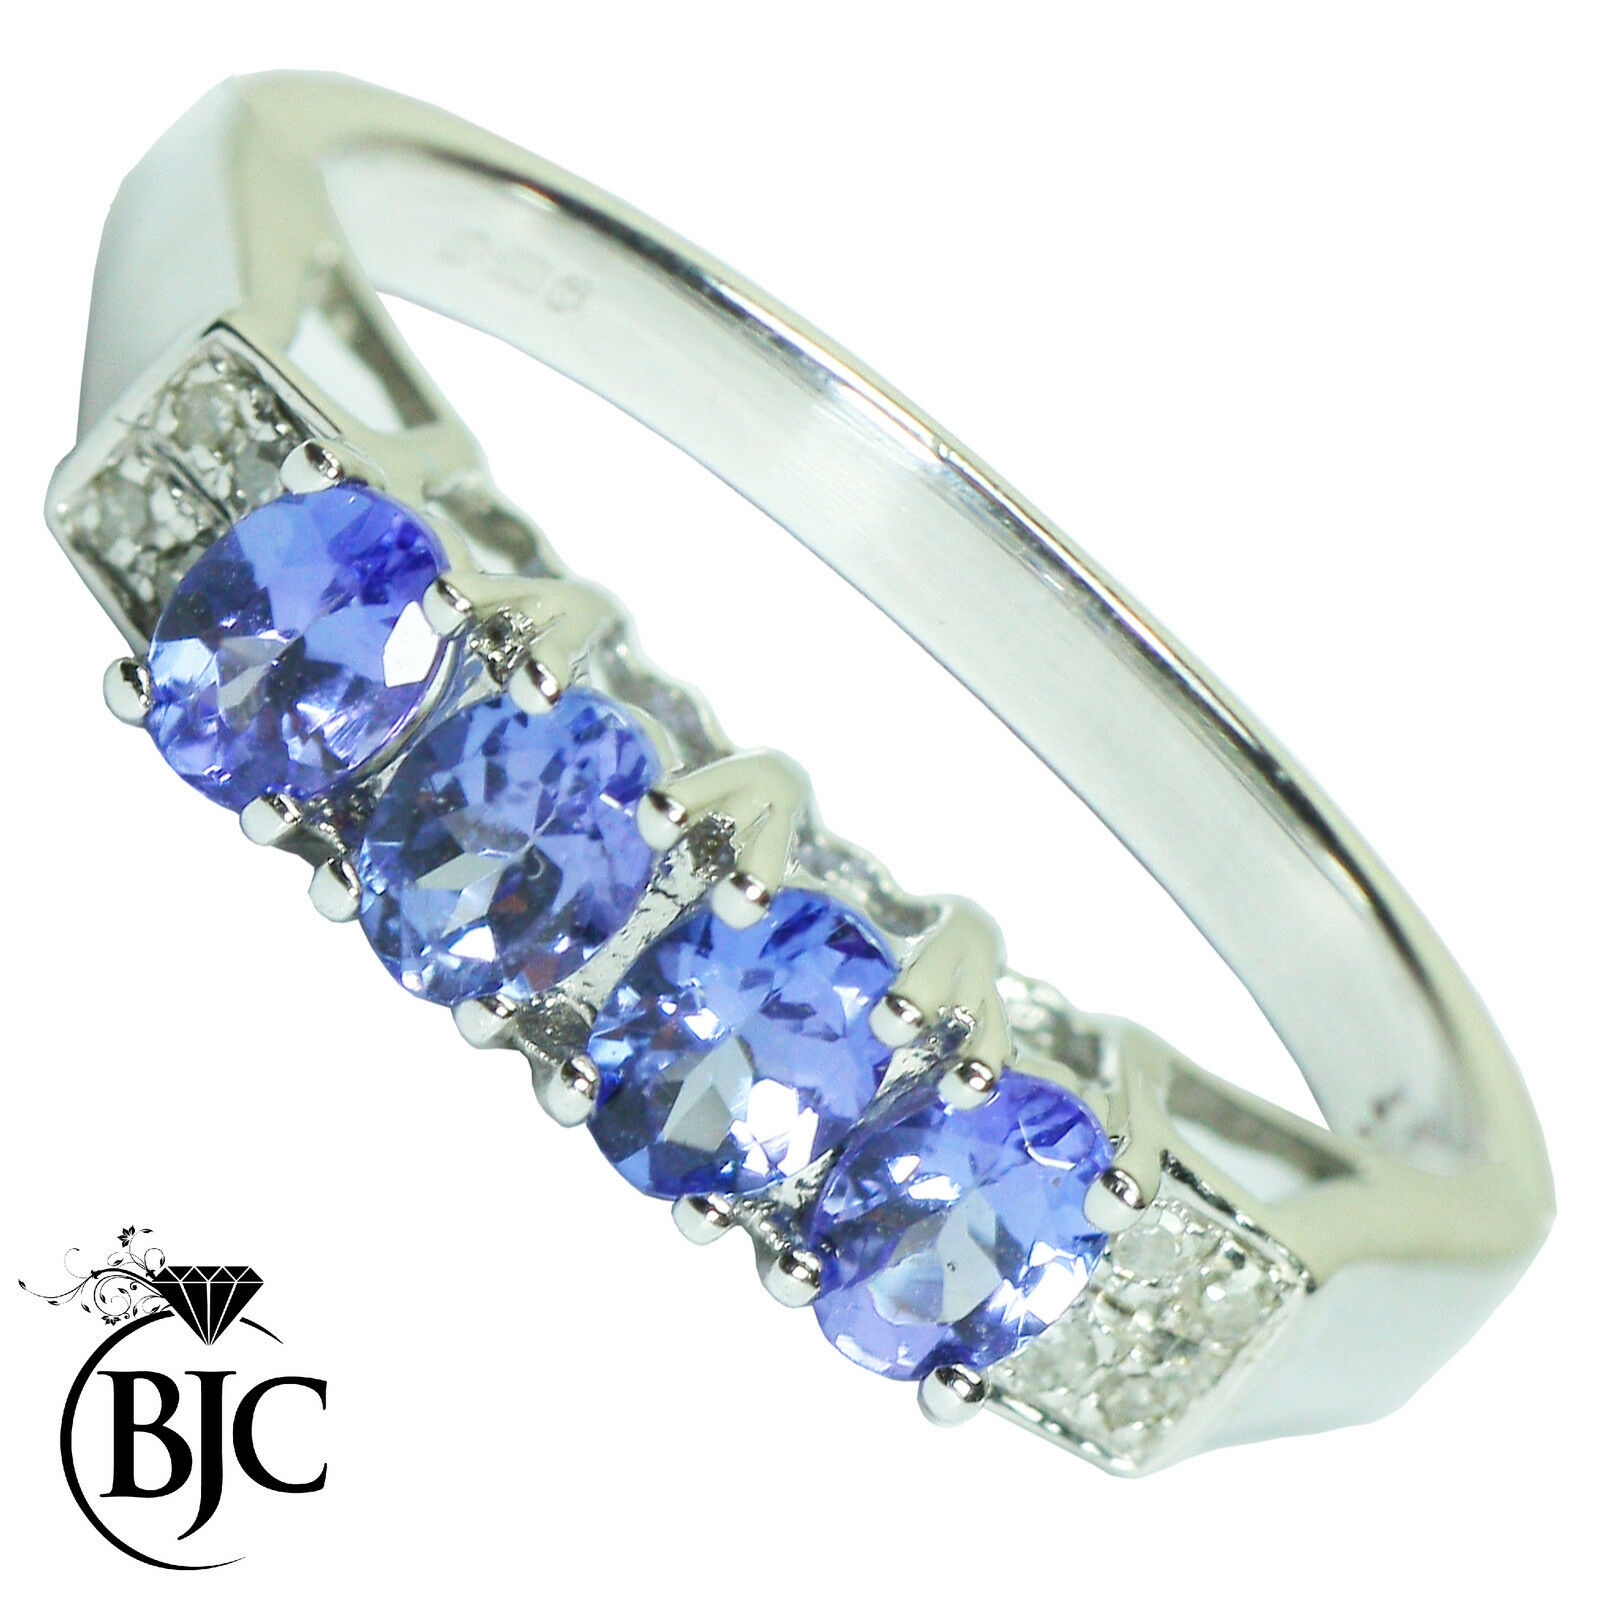 Bjc 9 Ct White gold Tanzanite & Diamant Éternité size L Bague de Fiançailles